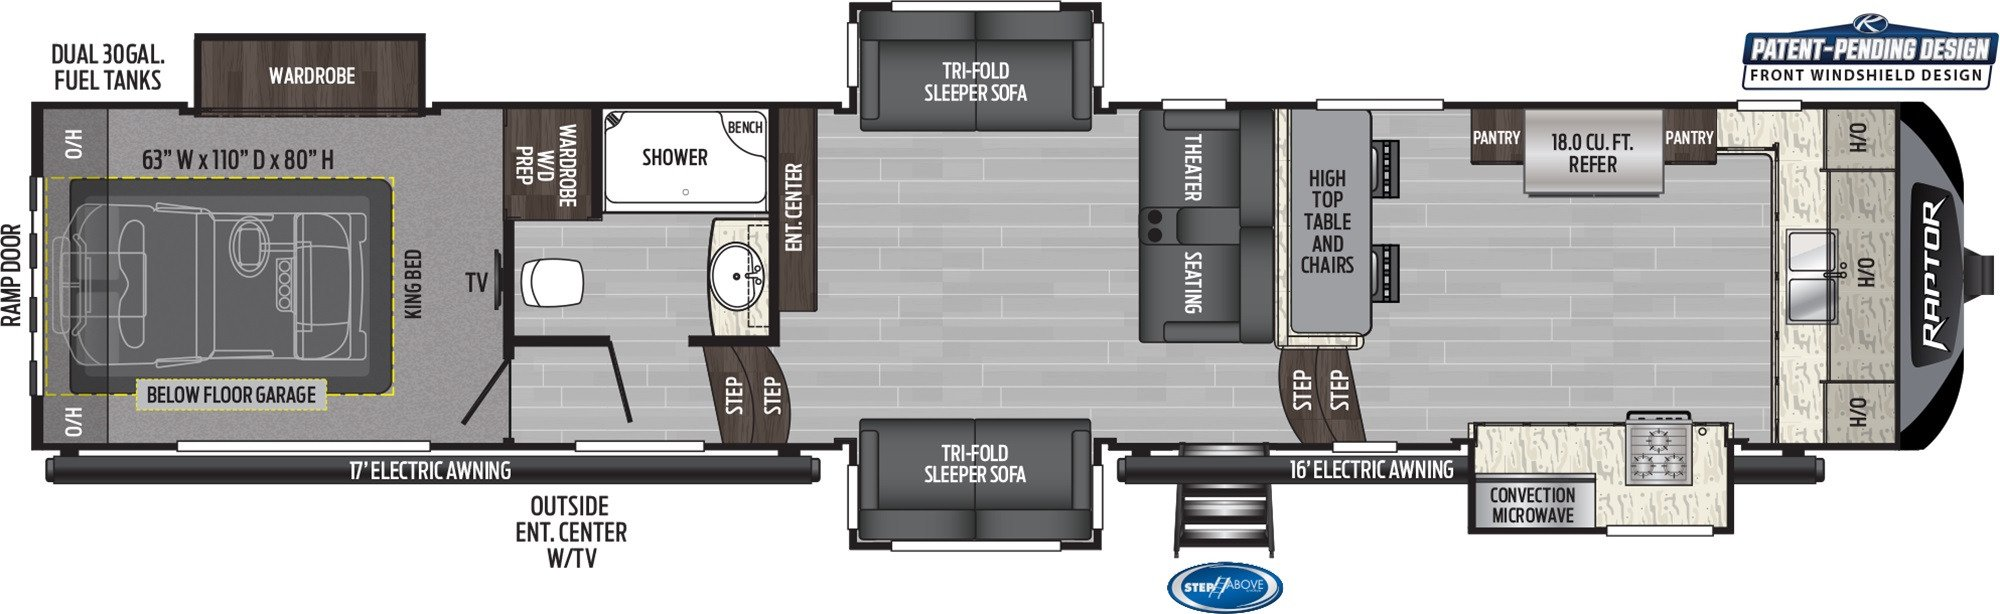 View Floor Plan for 2020 KEYSTONE RAPTOR 427